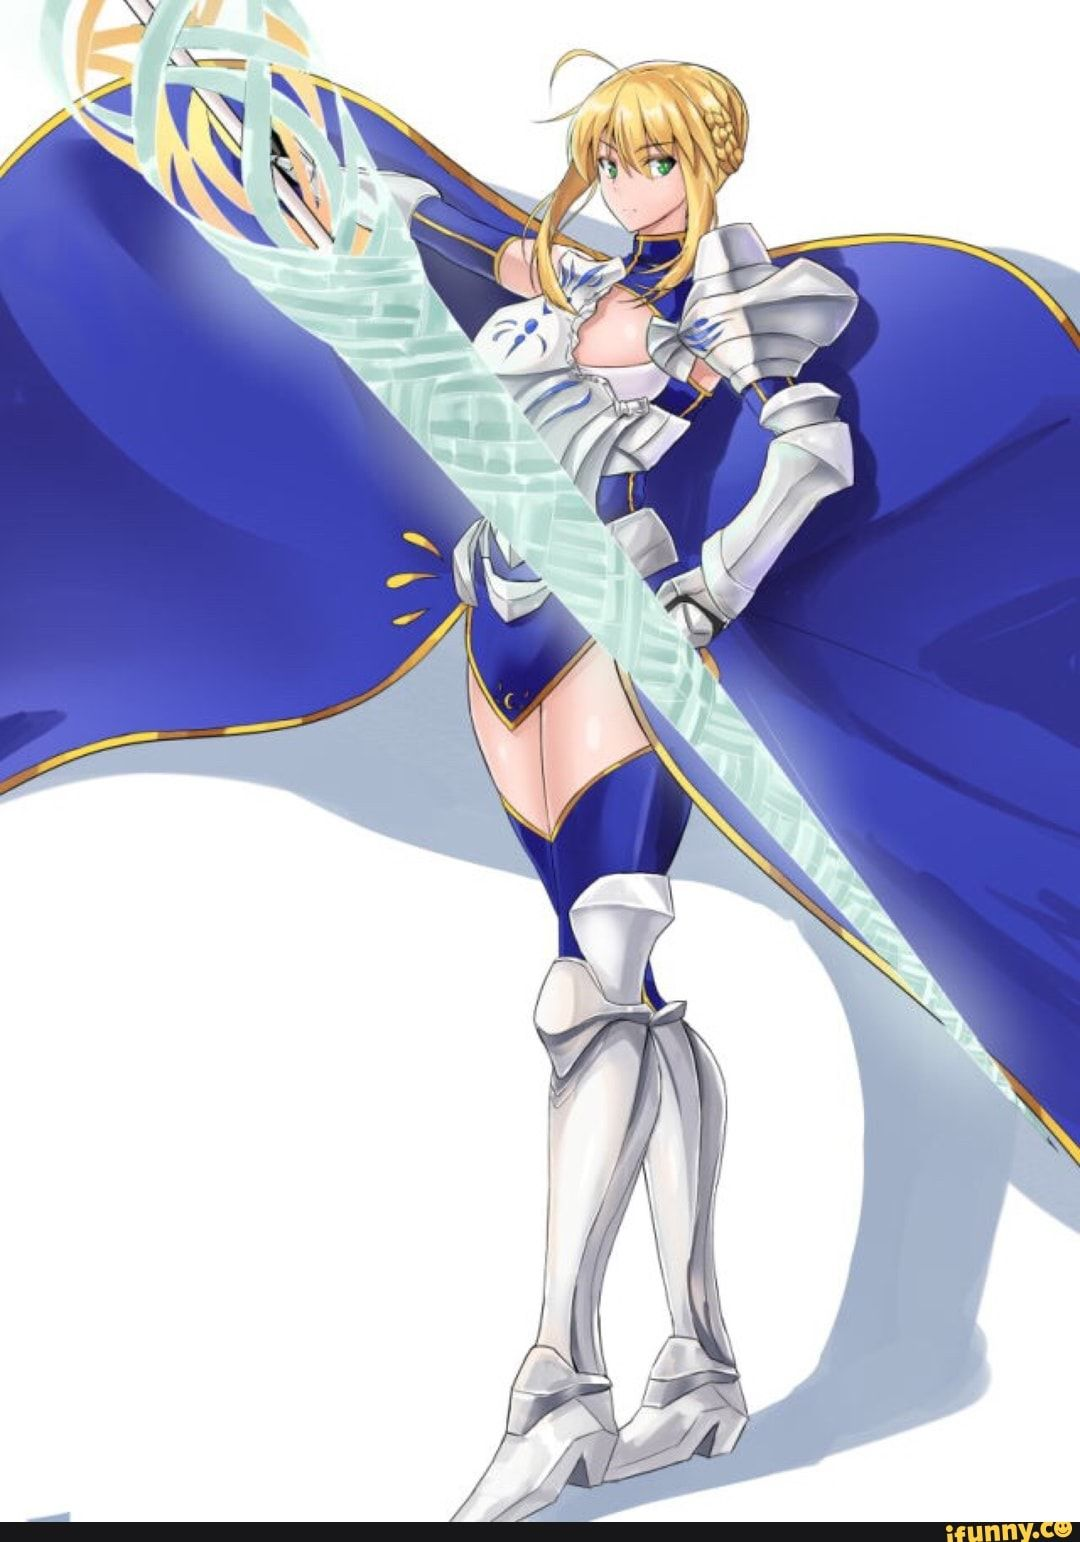 Found On Fate Sr Pinterest Anime Fate Stay Night And Type Moon